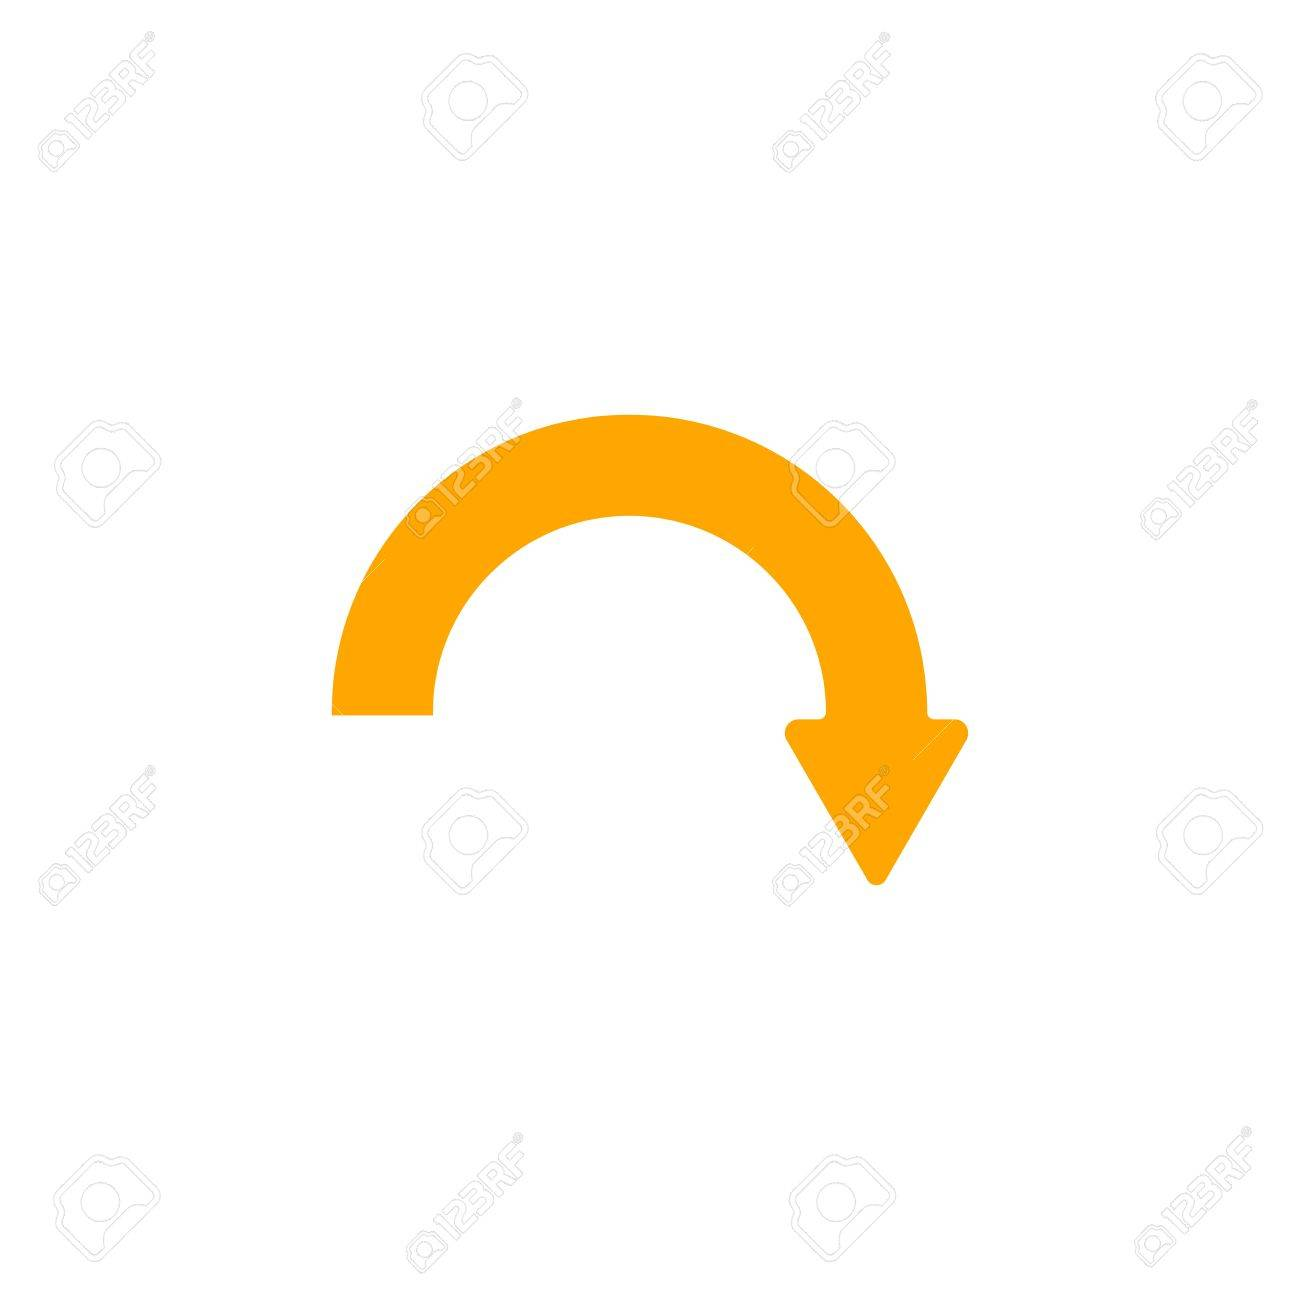 Downwards Curved Arrow With Arrowhead On The Right Stock Photo